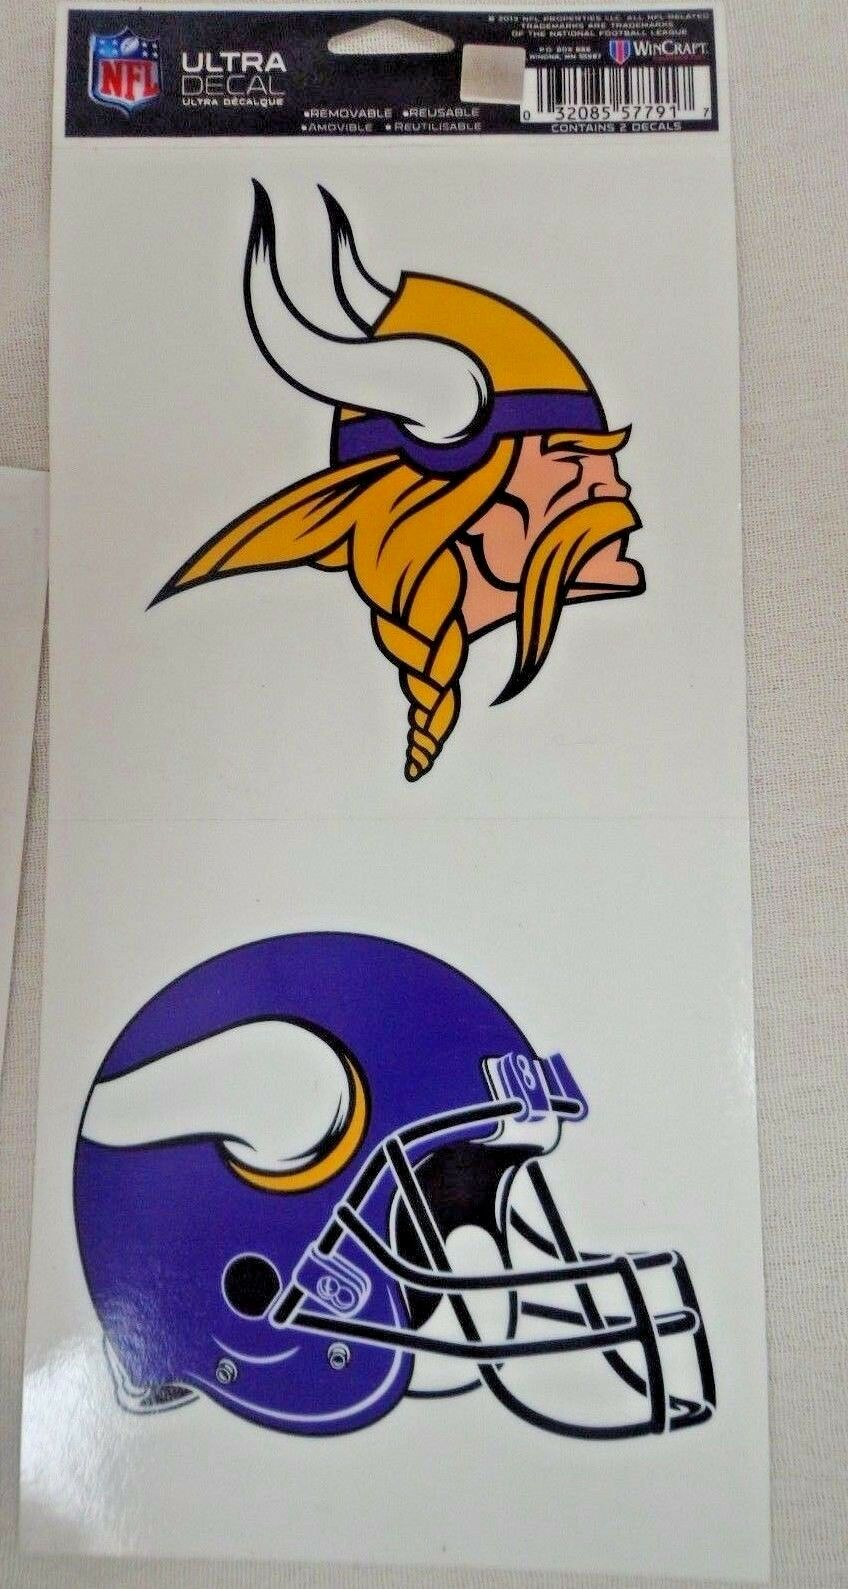 NFL Ultra Decals 2 Pack Set Removable Reusable Sticker Wincraft Minnesota Vikings